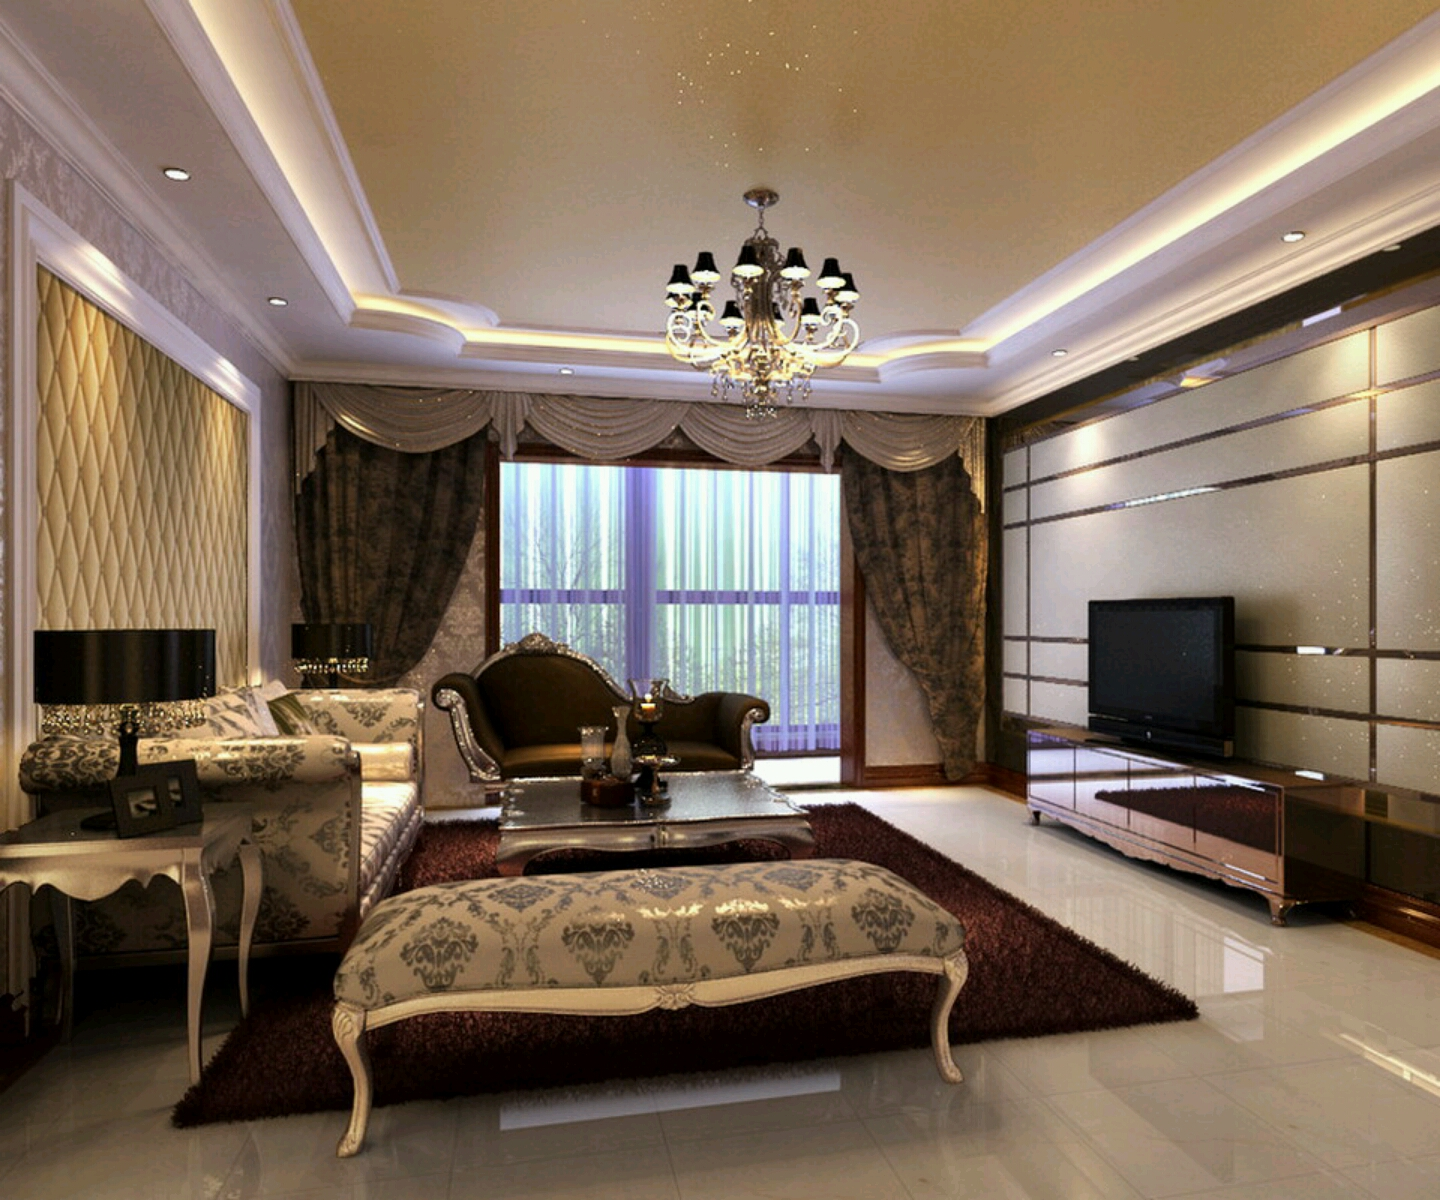 Interior decorating ideas living rooms dream house for Interior home accents